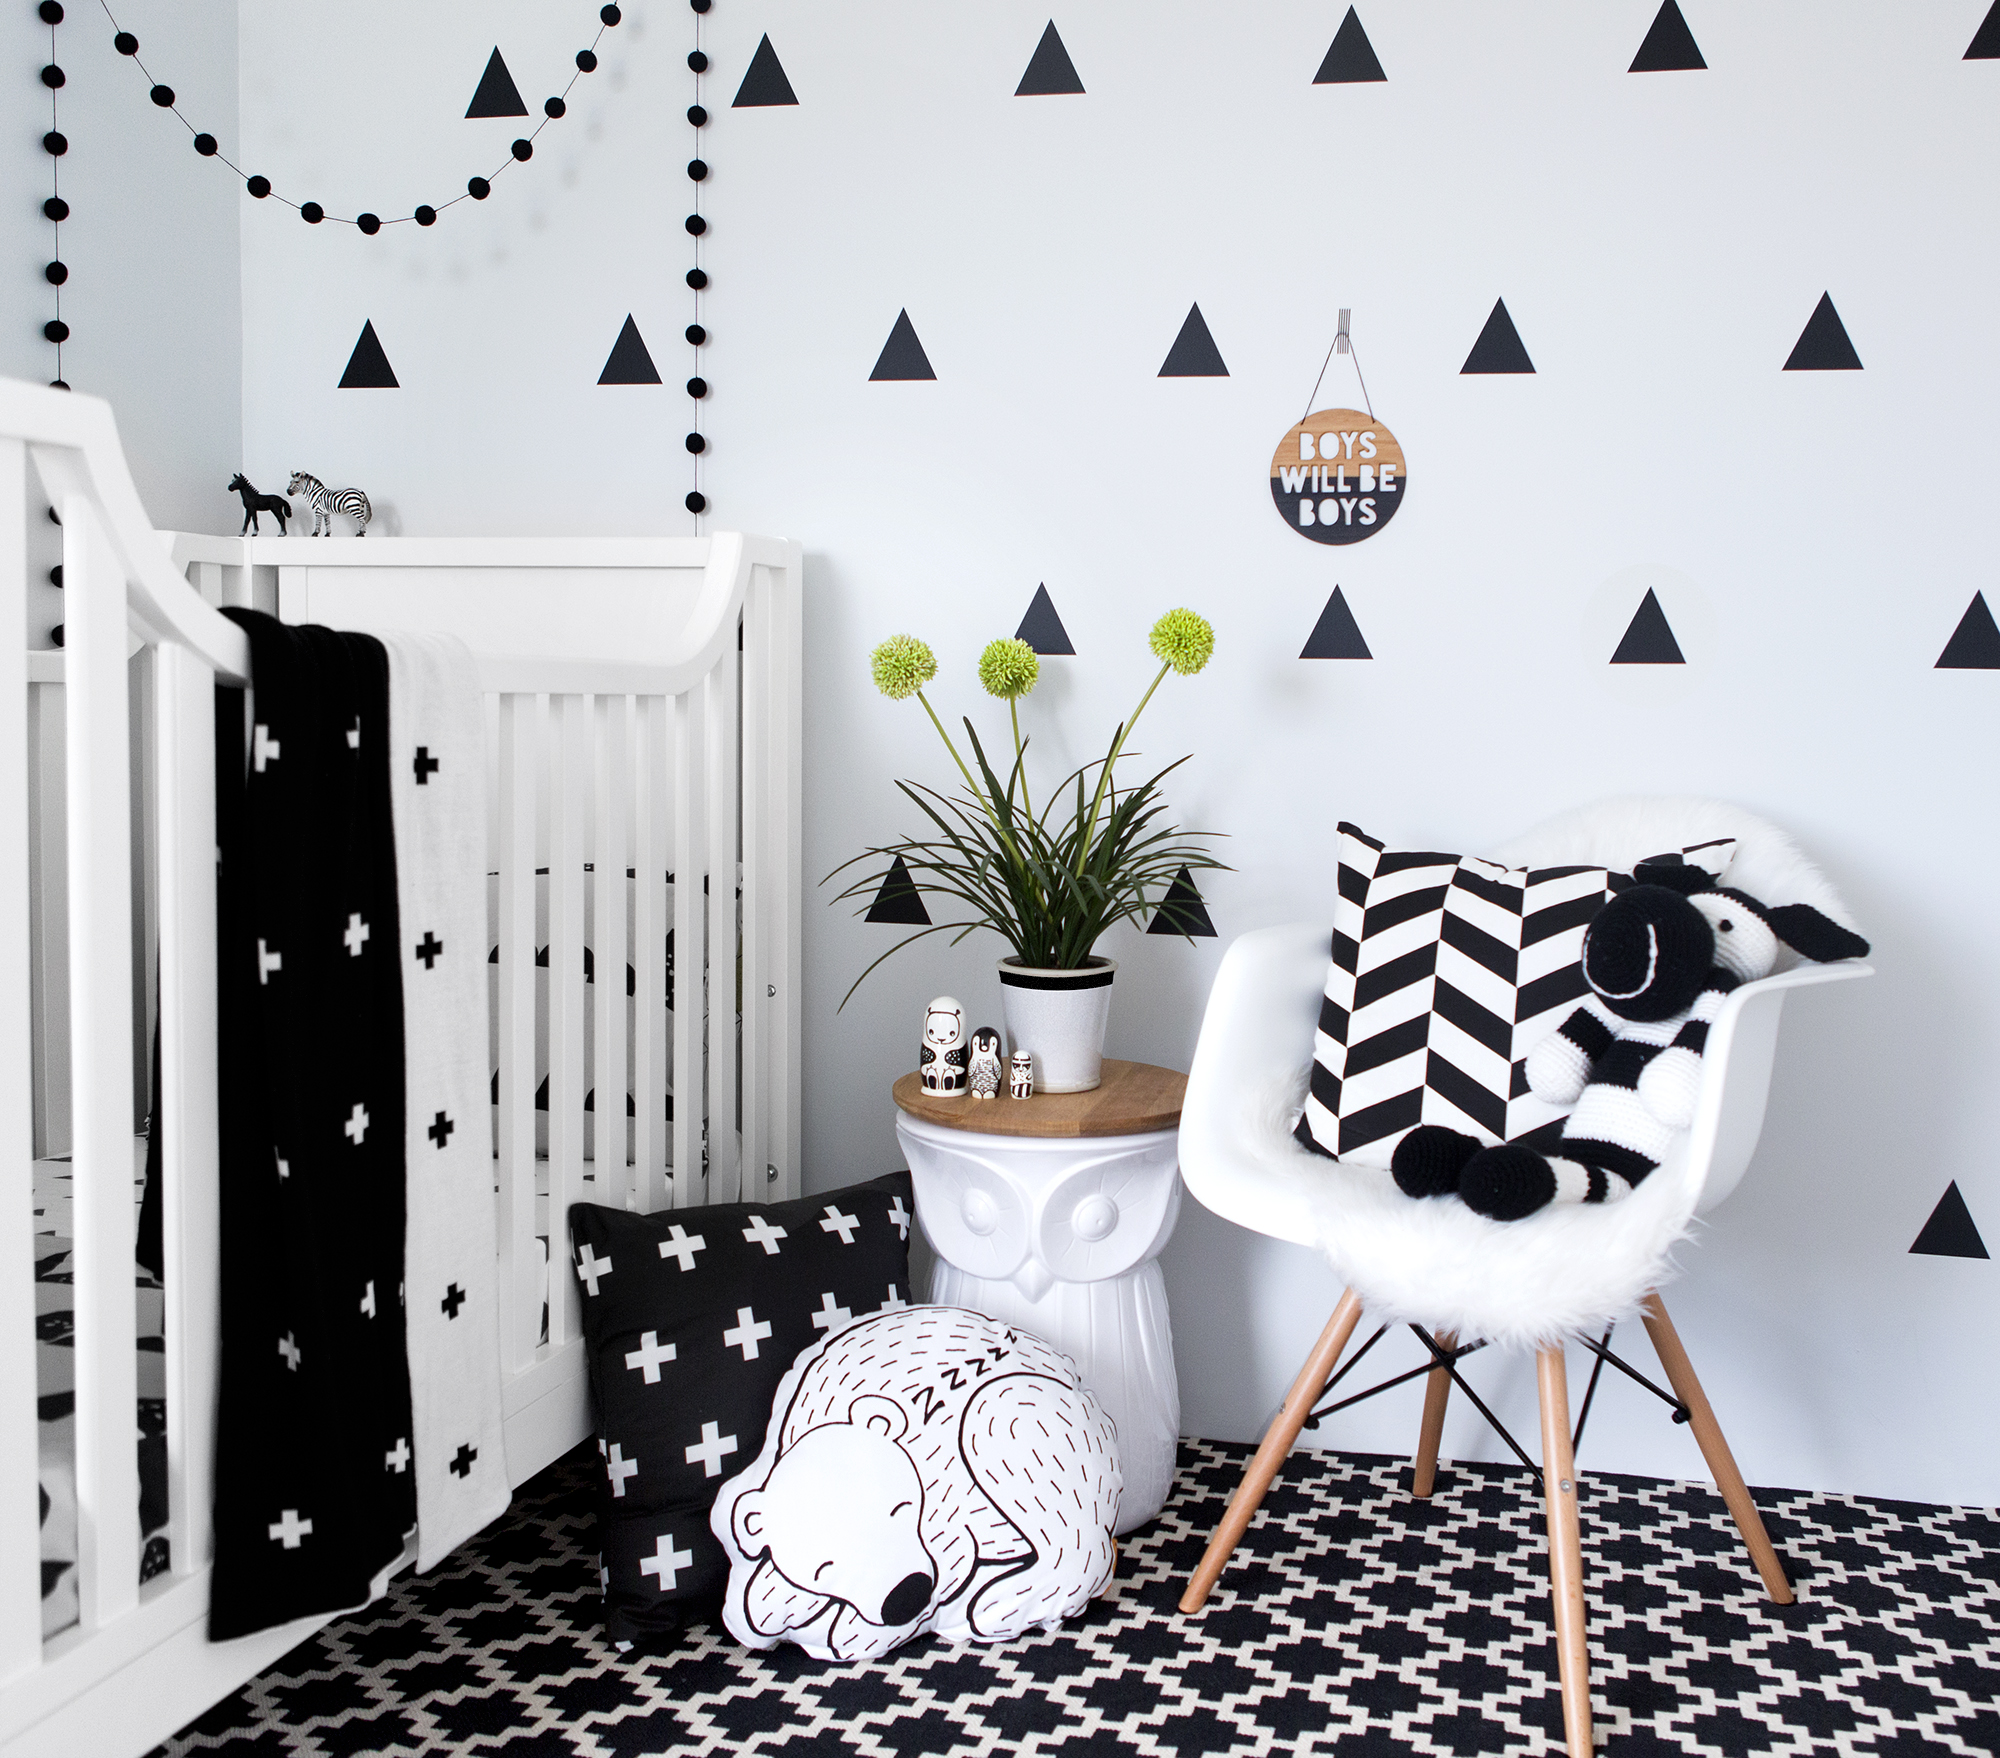 Painting Bedroom Furniture Black Australian Nursery Ideas With Vivid Wall Decals The